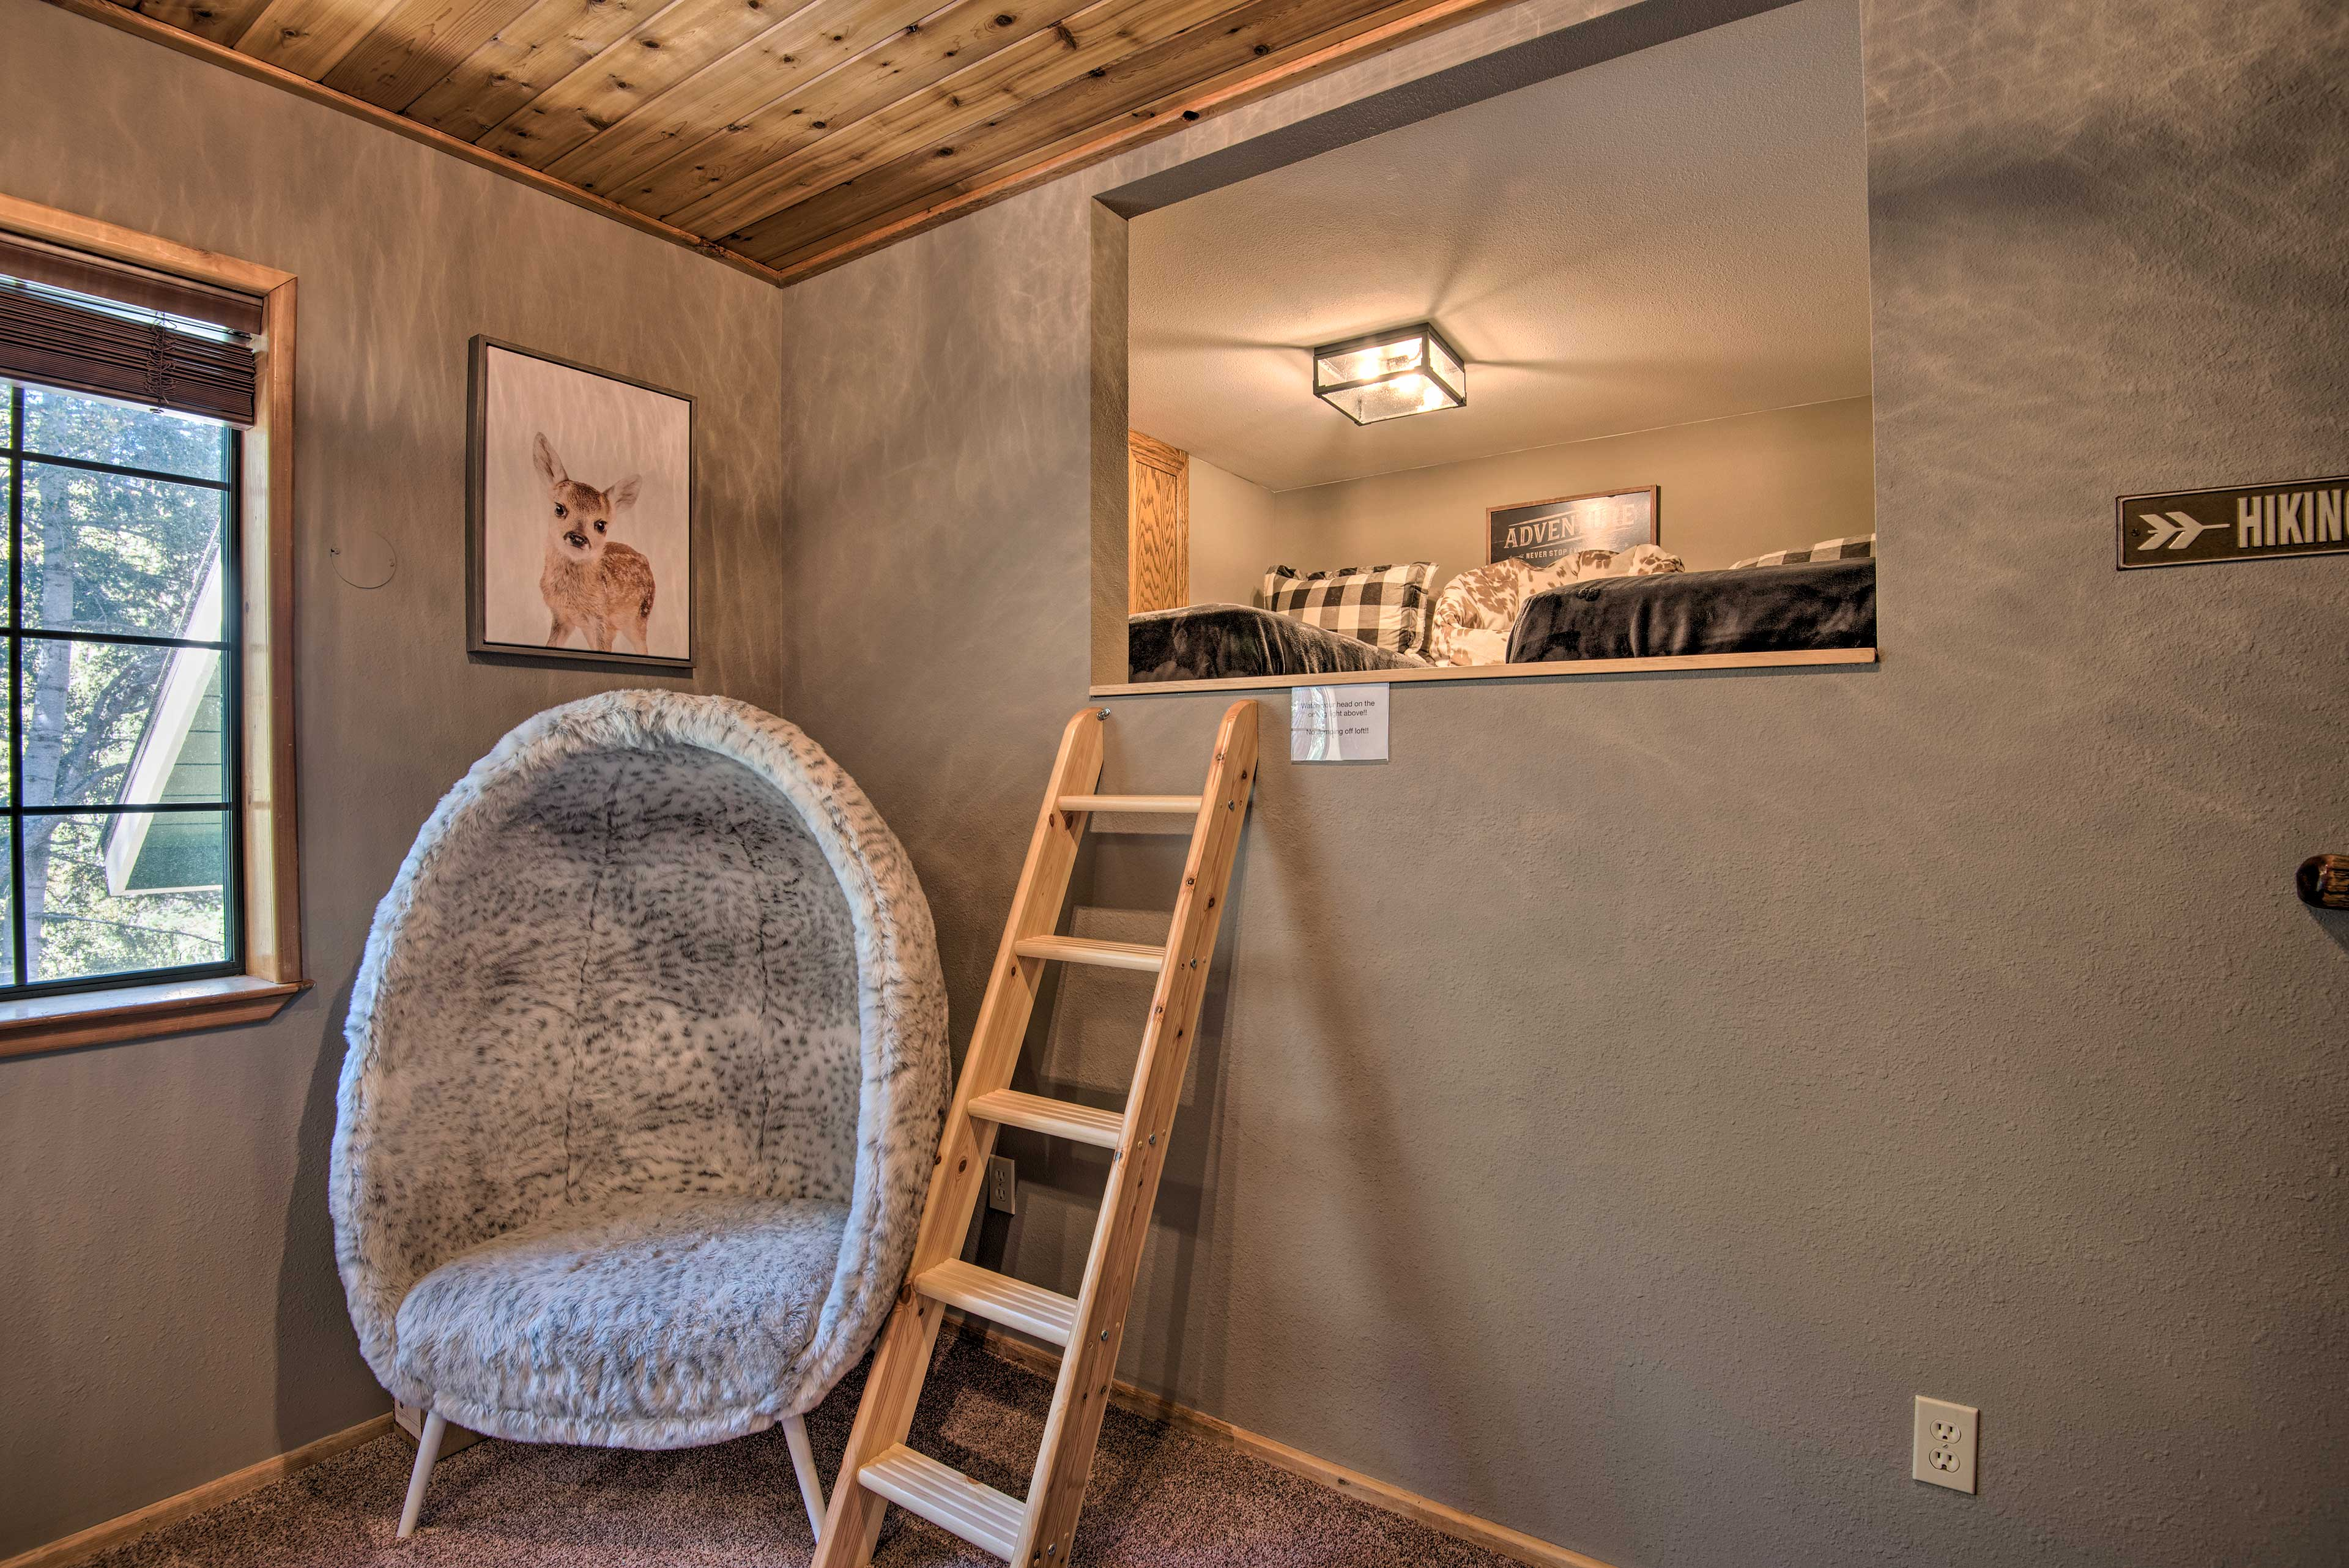 The little ones will love sleeping in the kids loft with 2 twin beds.